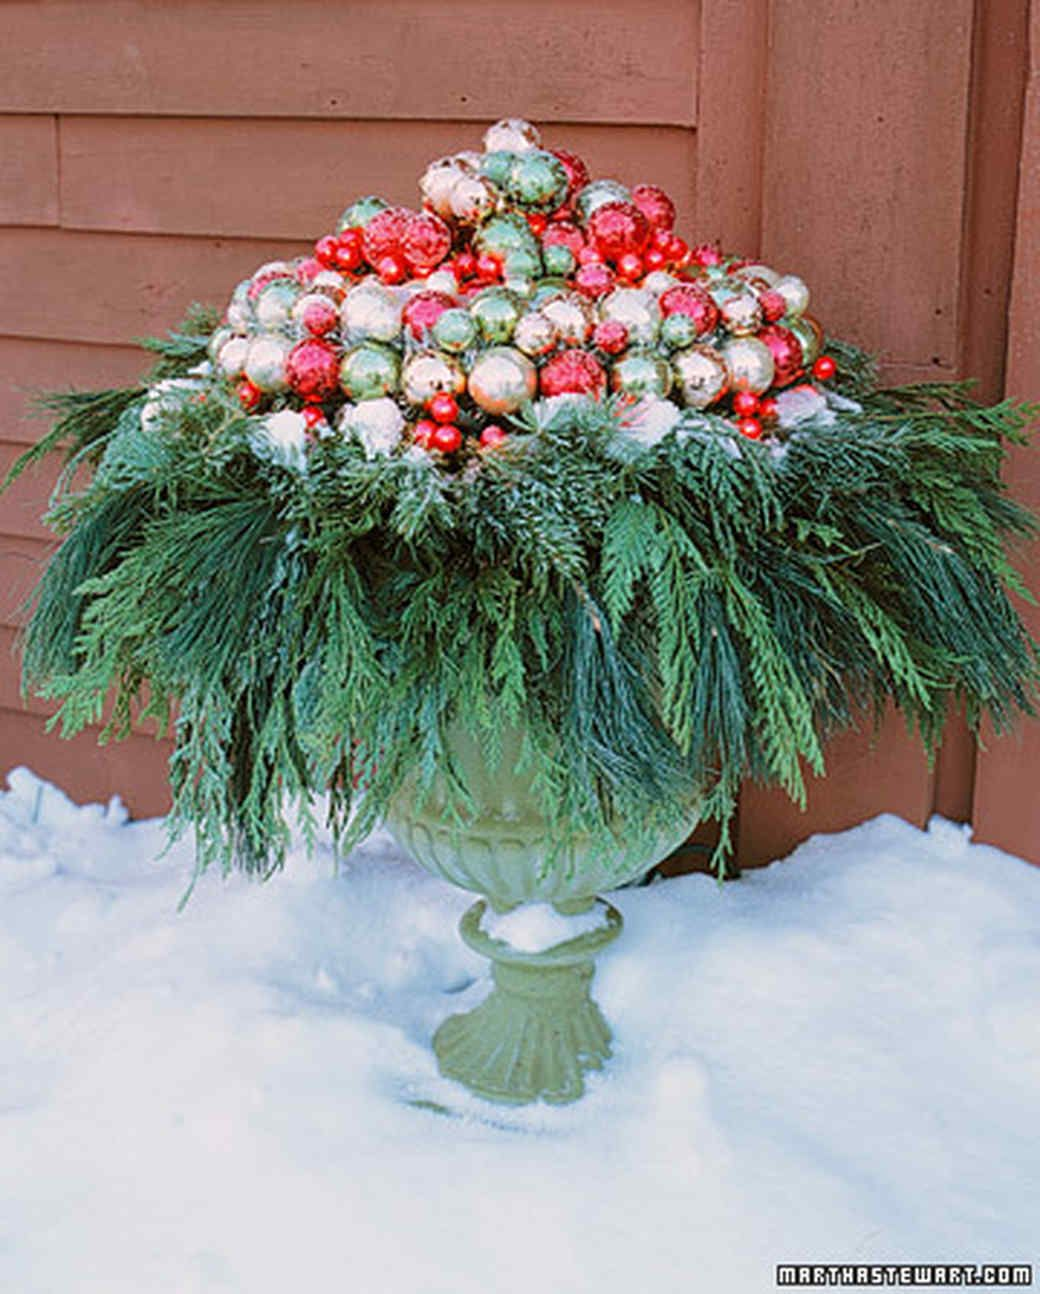 Decorative Urns For Plants Amusing Urn Topper  Ornament Outdoor Christmas And Christmas Decor Design Ideas